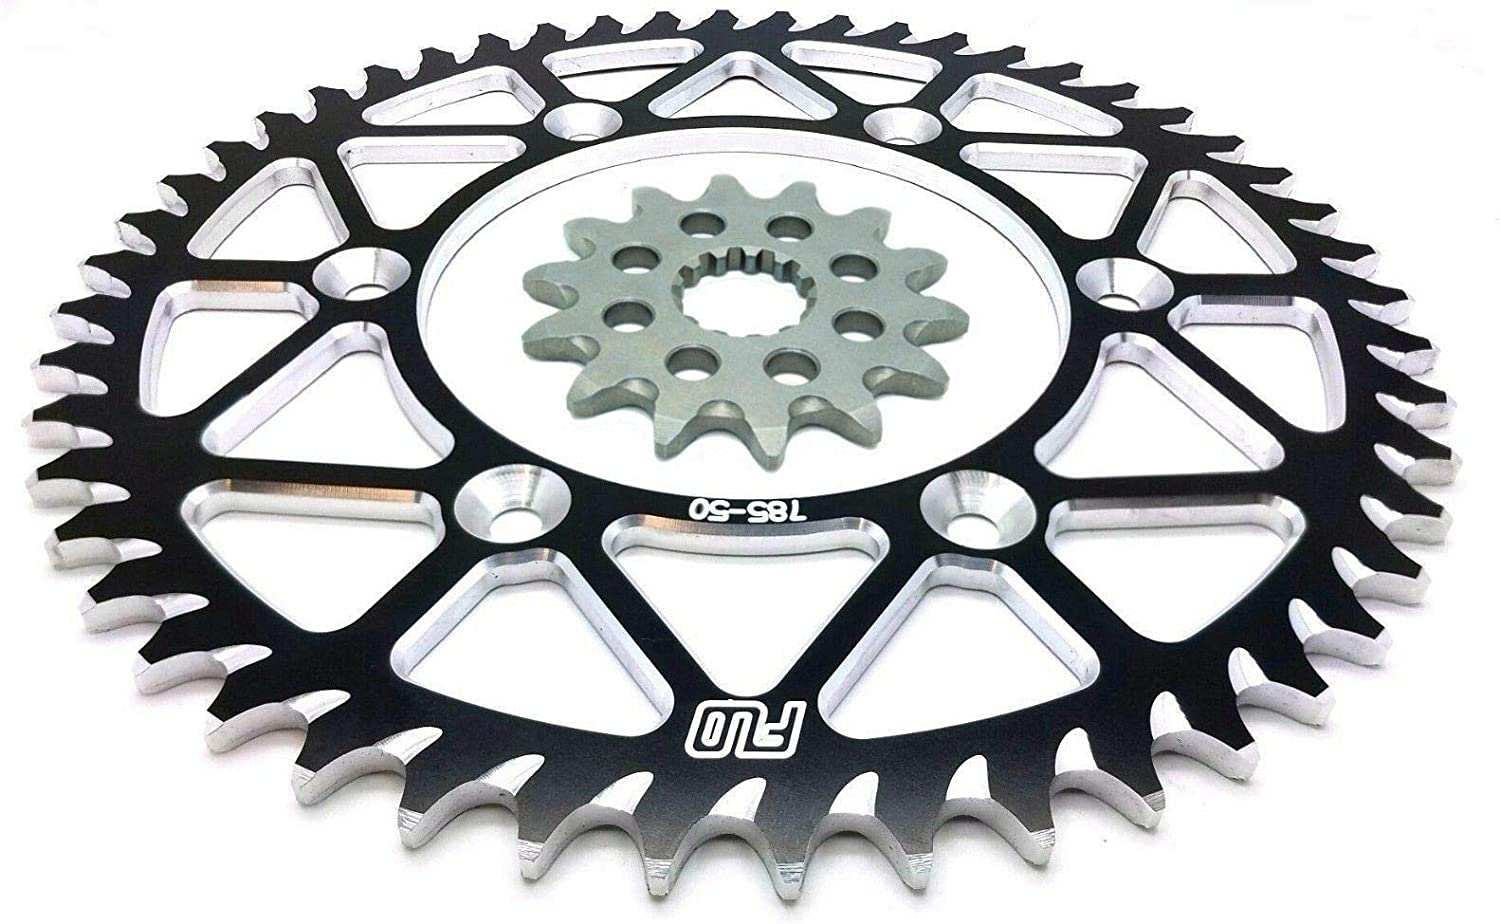 50T, Black REAR SPROCKET 48-53 TOOTH GREEN//BLACK// BLUE RENTHAL R1 Chain and Sprocket Combo Kit KAWASAKI KX450F FRONT SPROCKET 14T